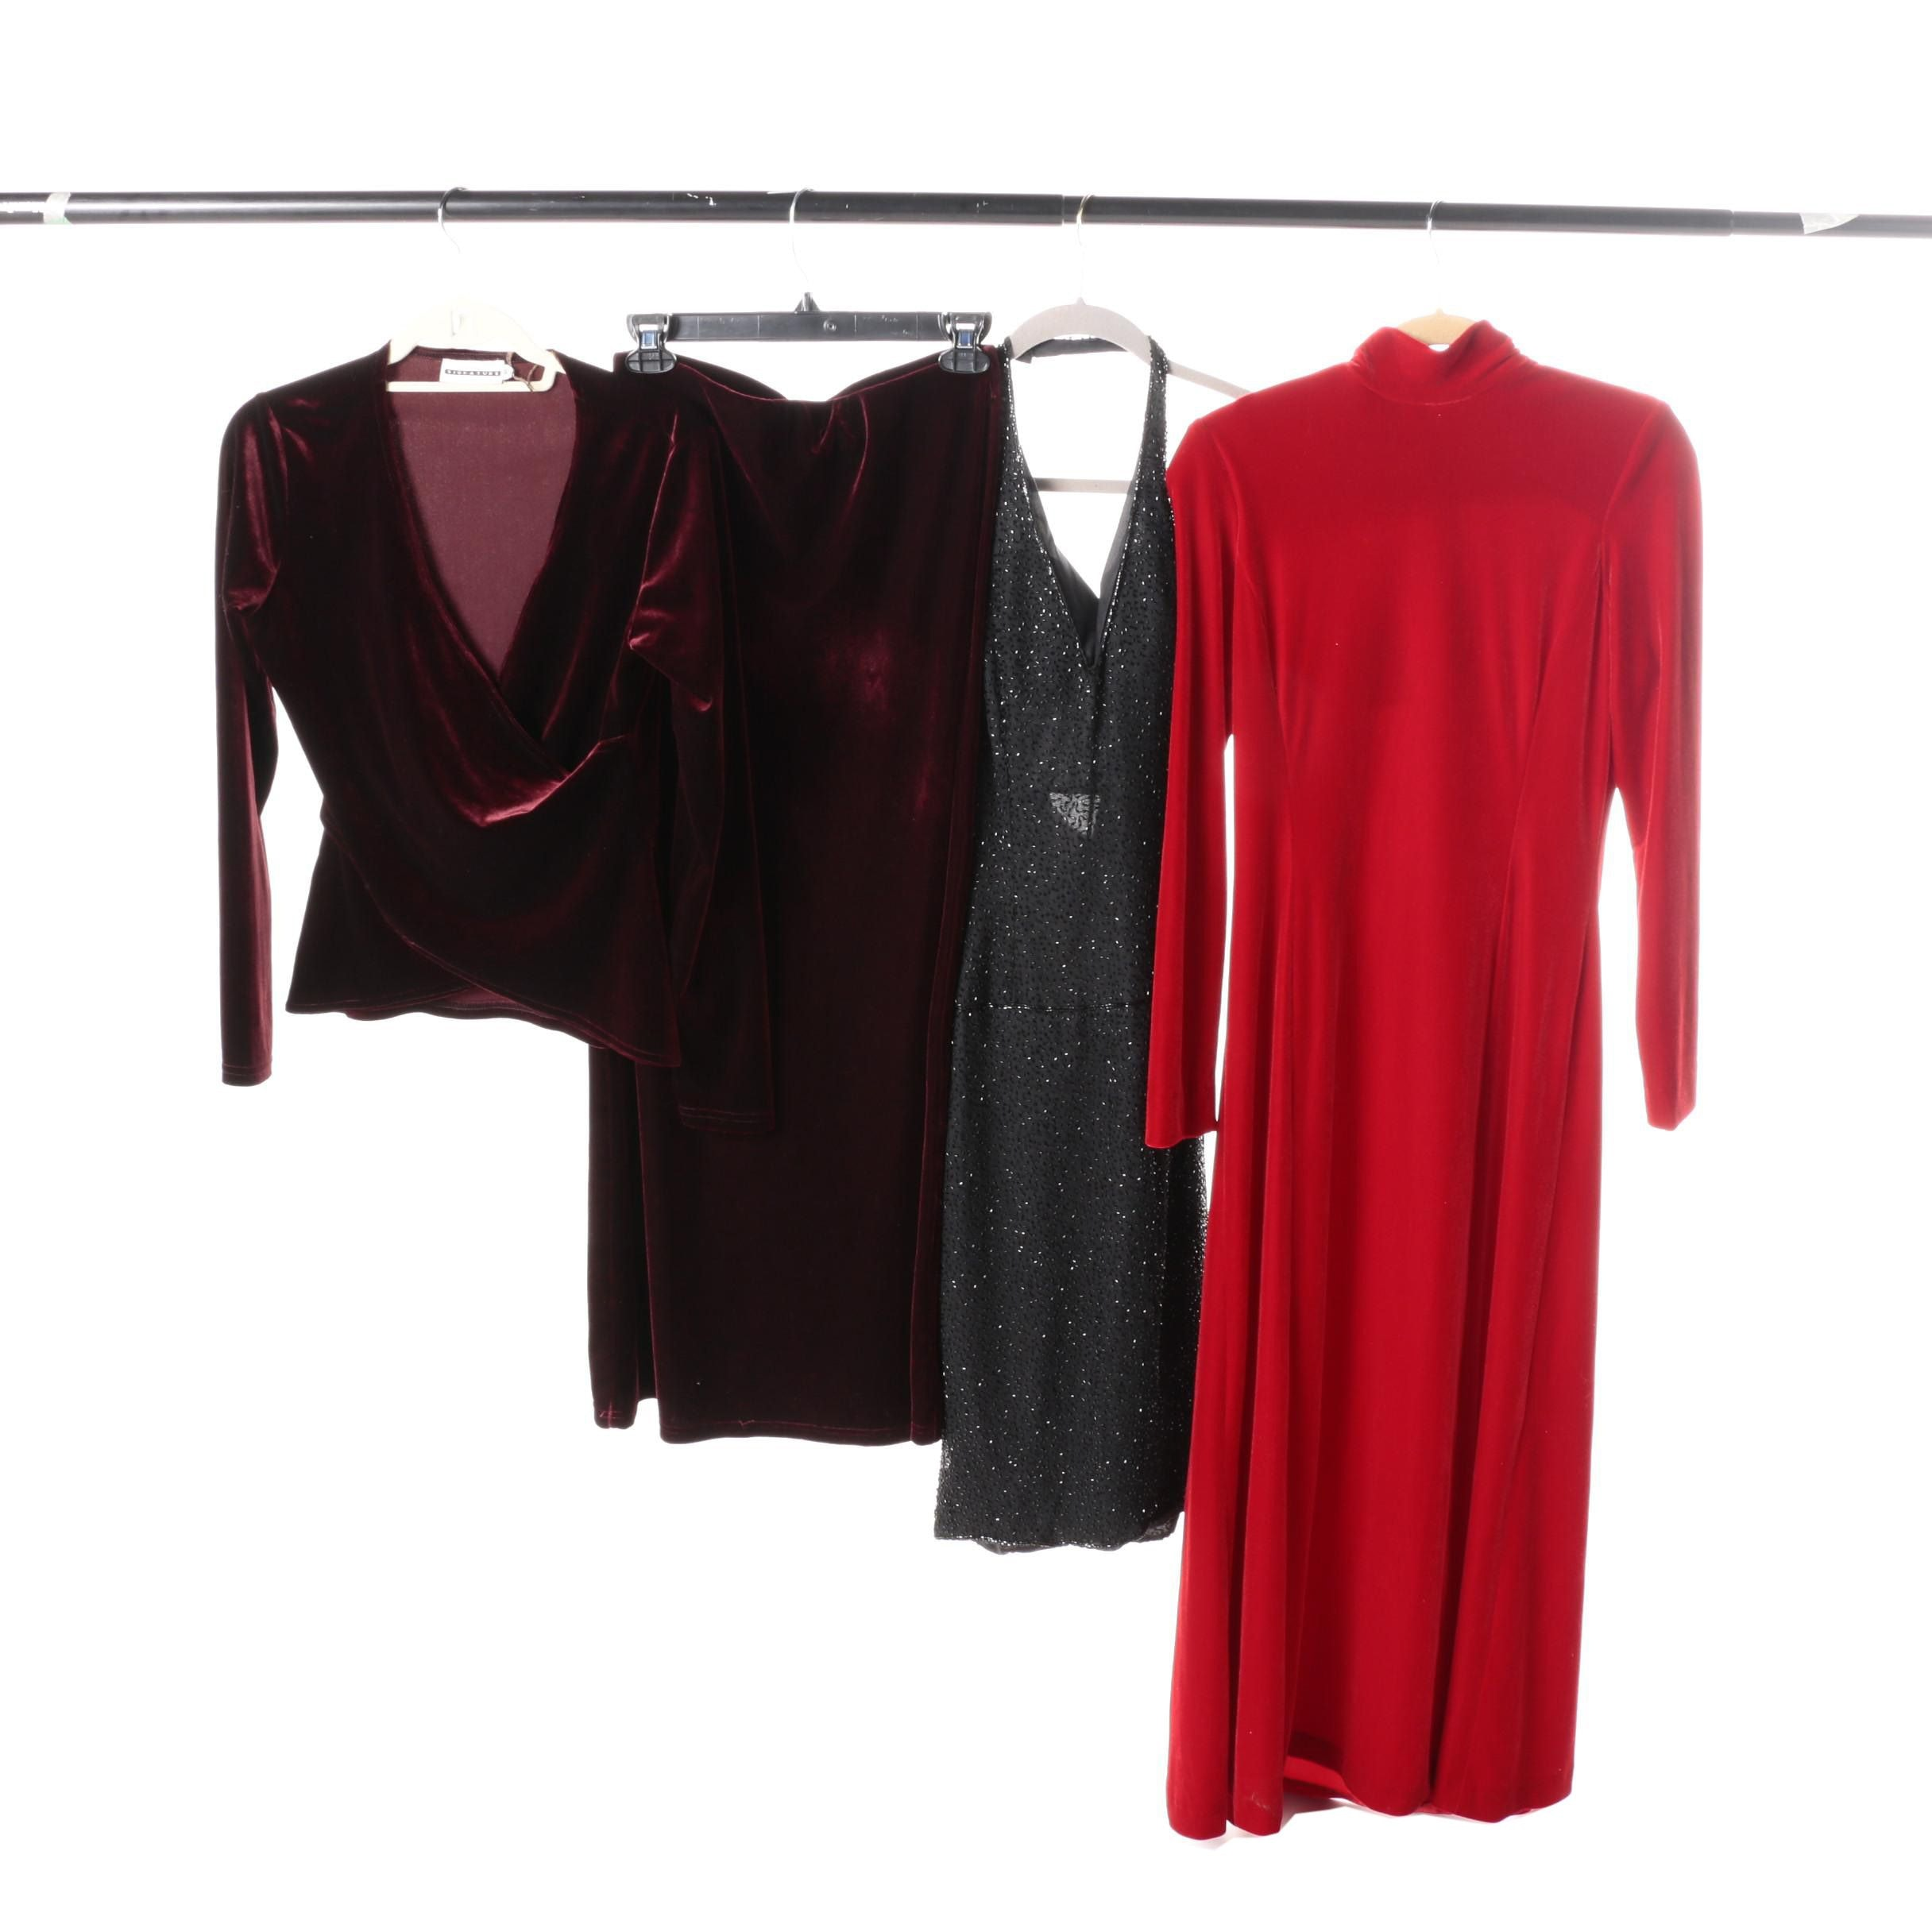 Women's Jewel-Tone Dresses